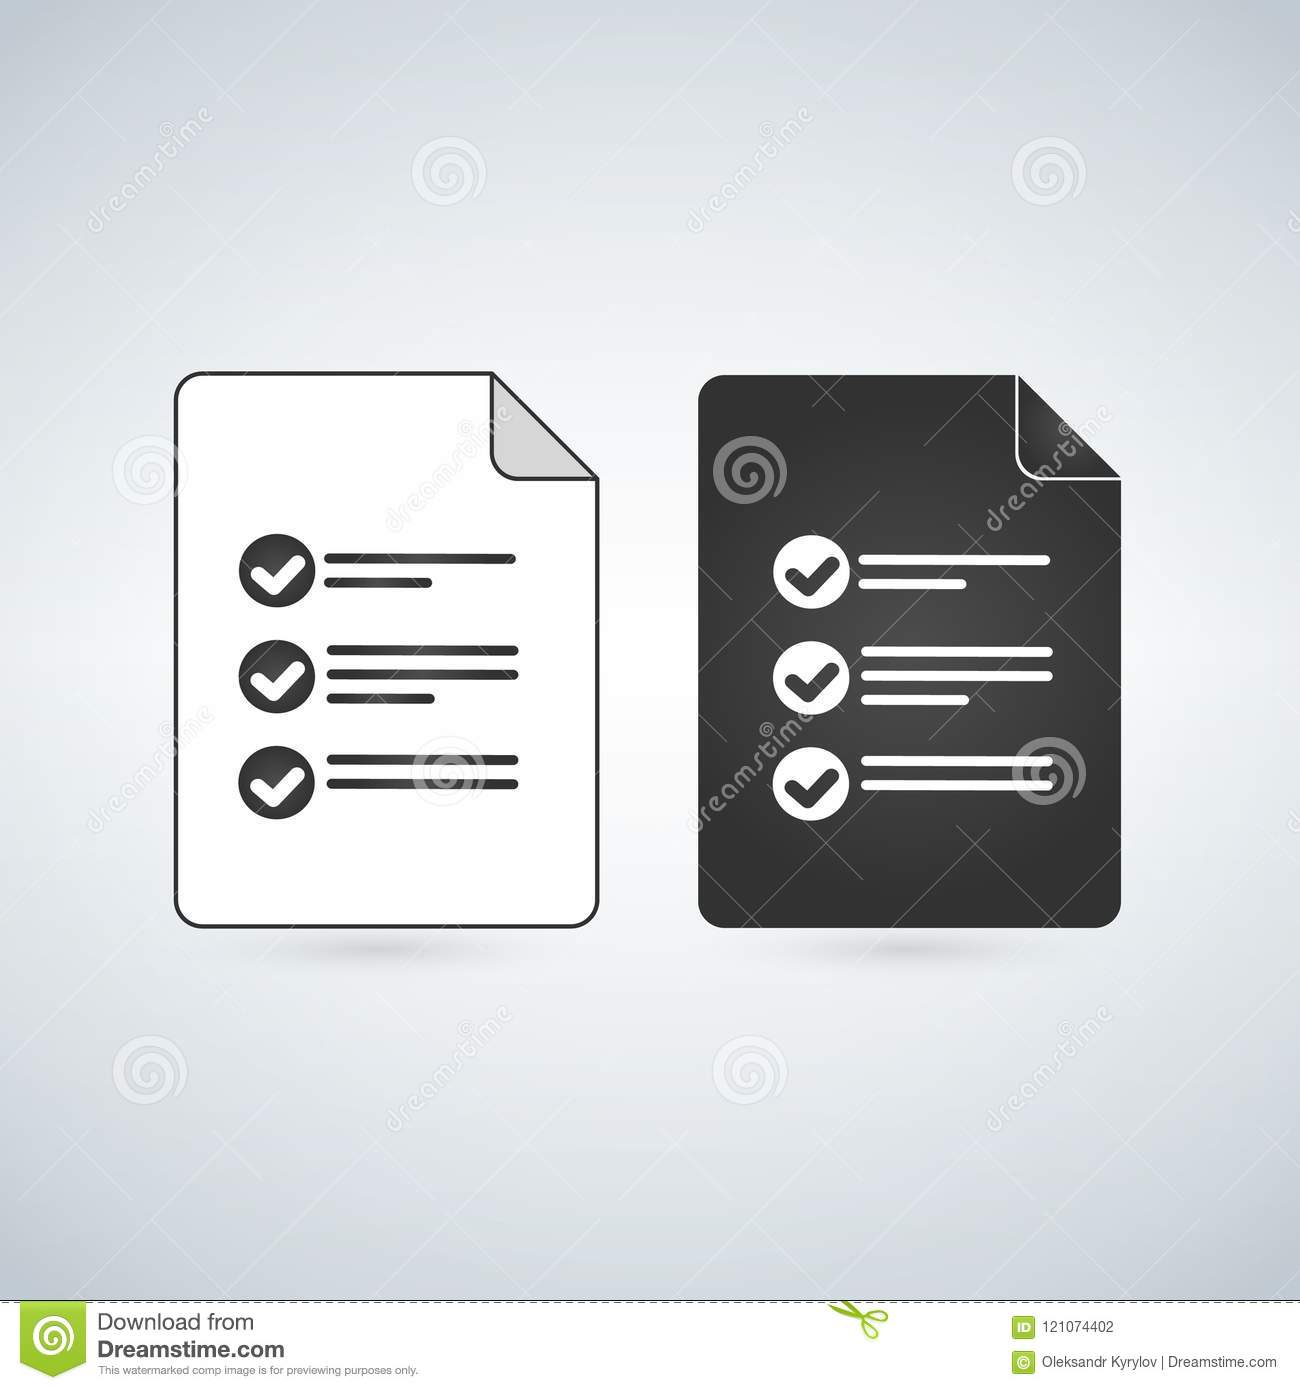 Text Document File Vector Icon With Notes And Checkmark  Flat Sign